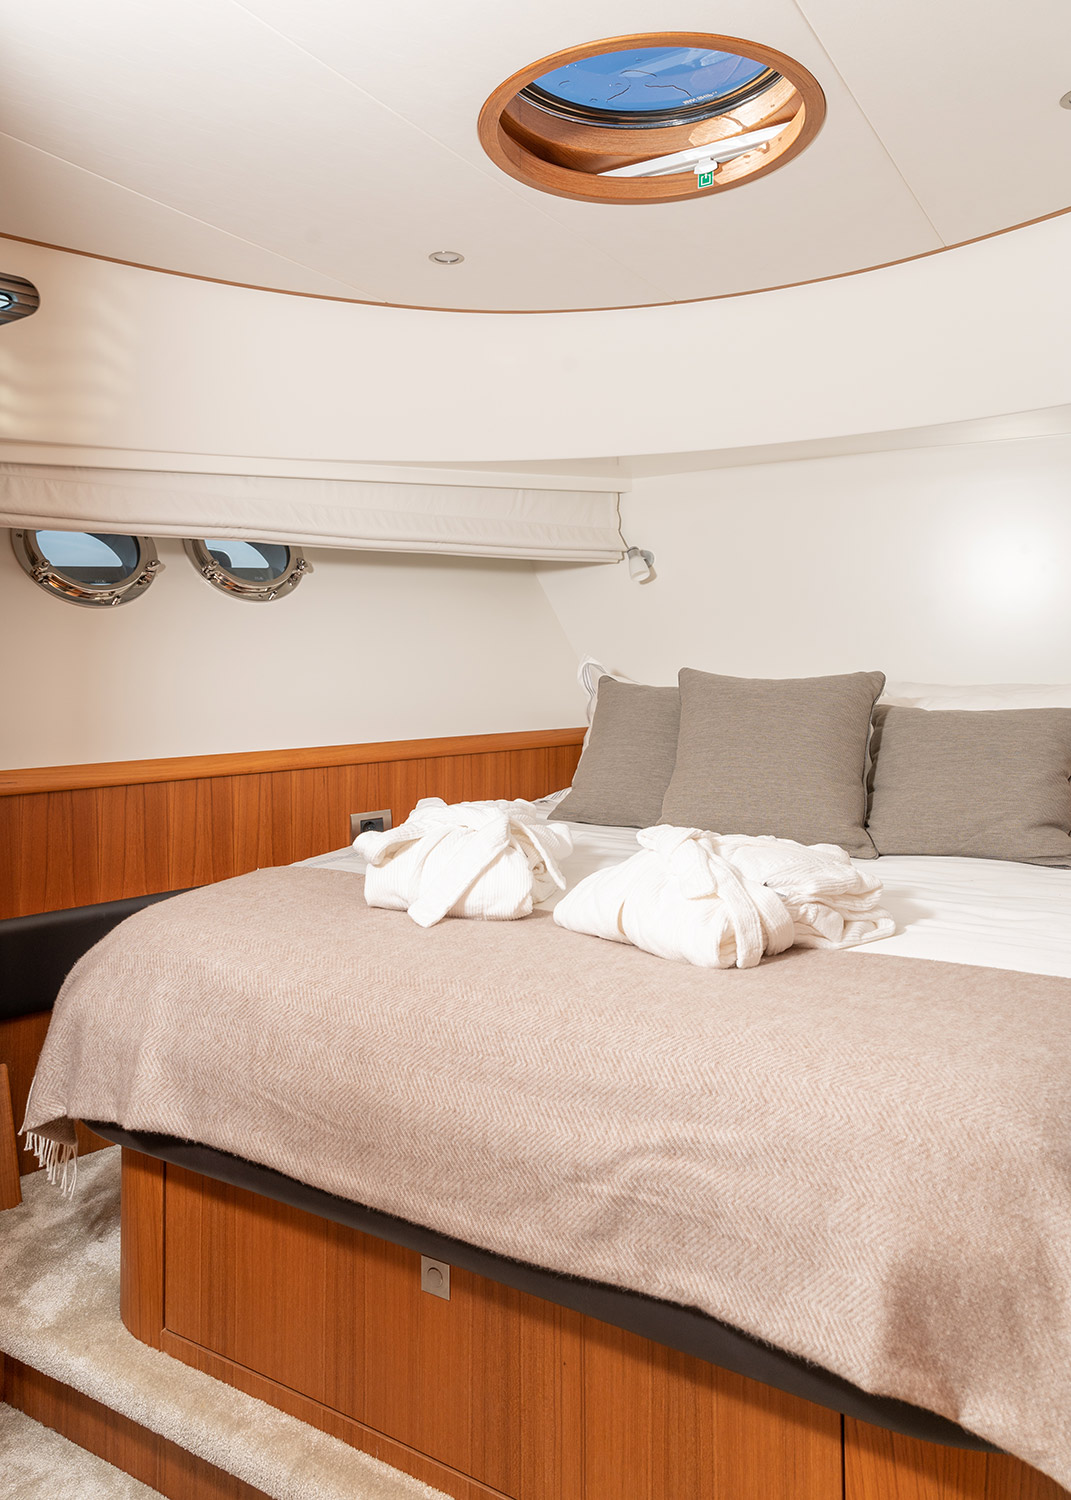 view of the master bedroom on a Luxury Yacht Charter made by Mulder motoryacht